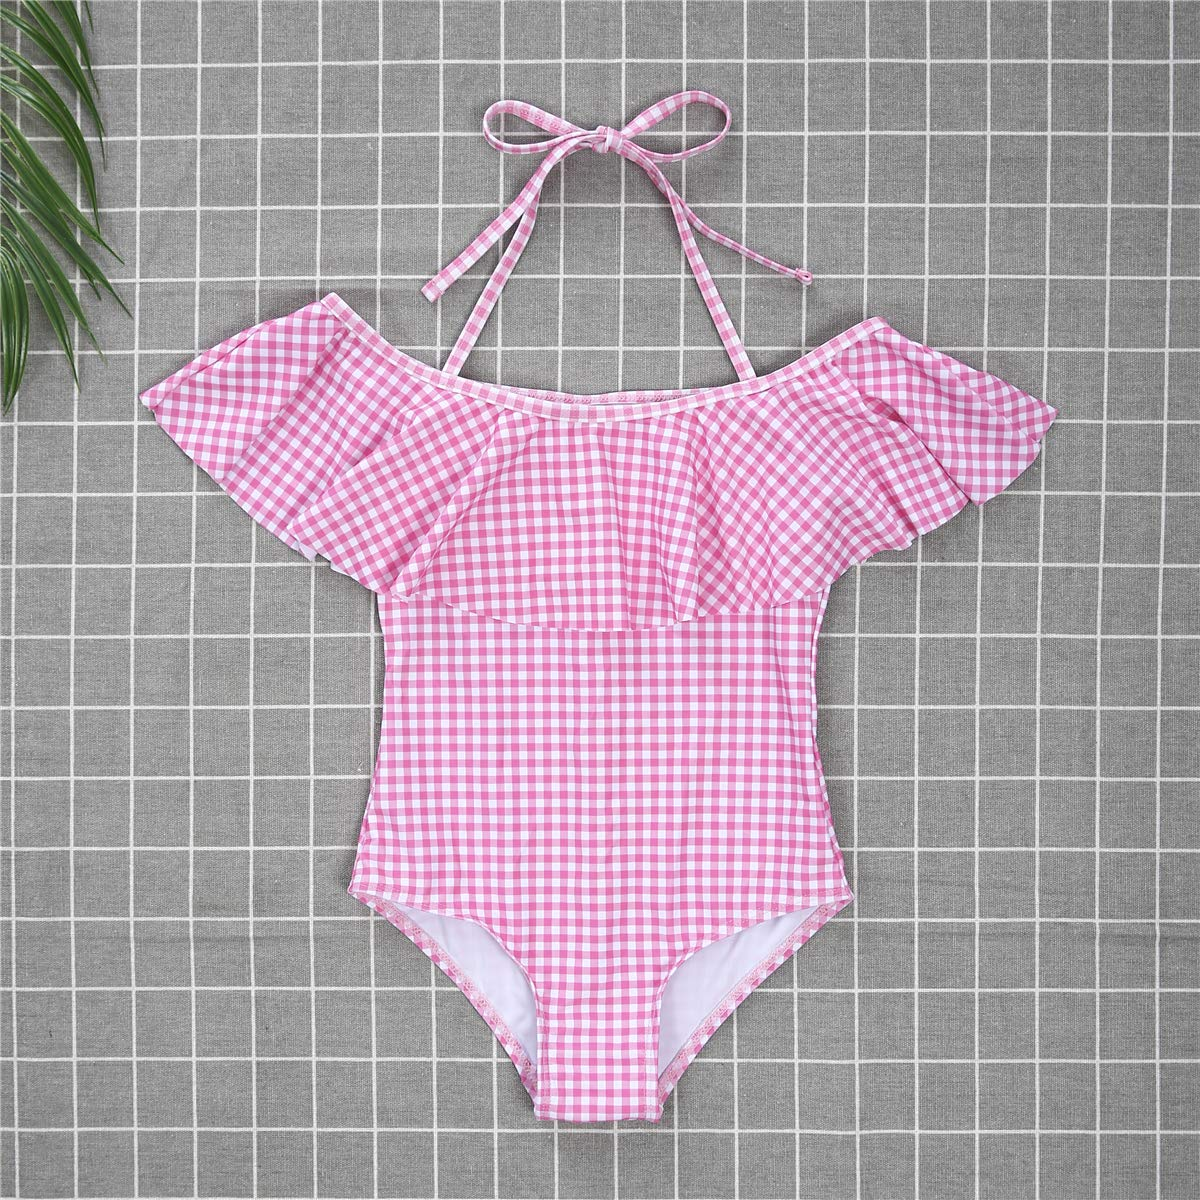 Mommy and Me One-Piece Swimsuit Family Matching Pink Check Flounce Collar Swimwear Halter Bathing Suit